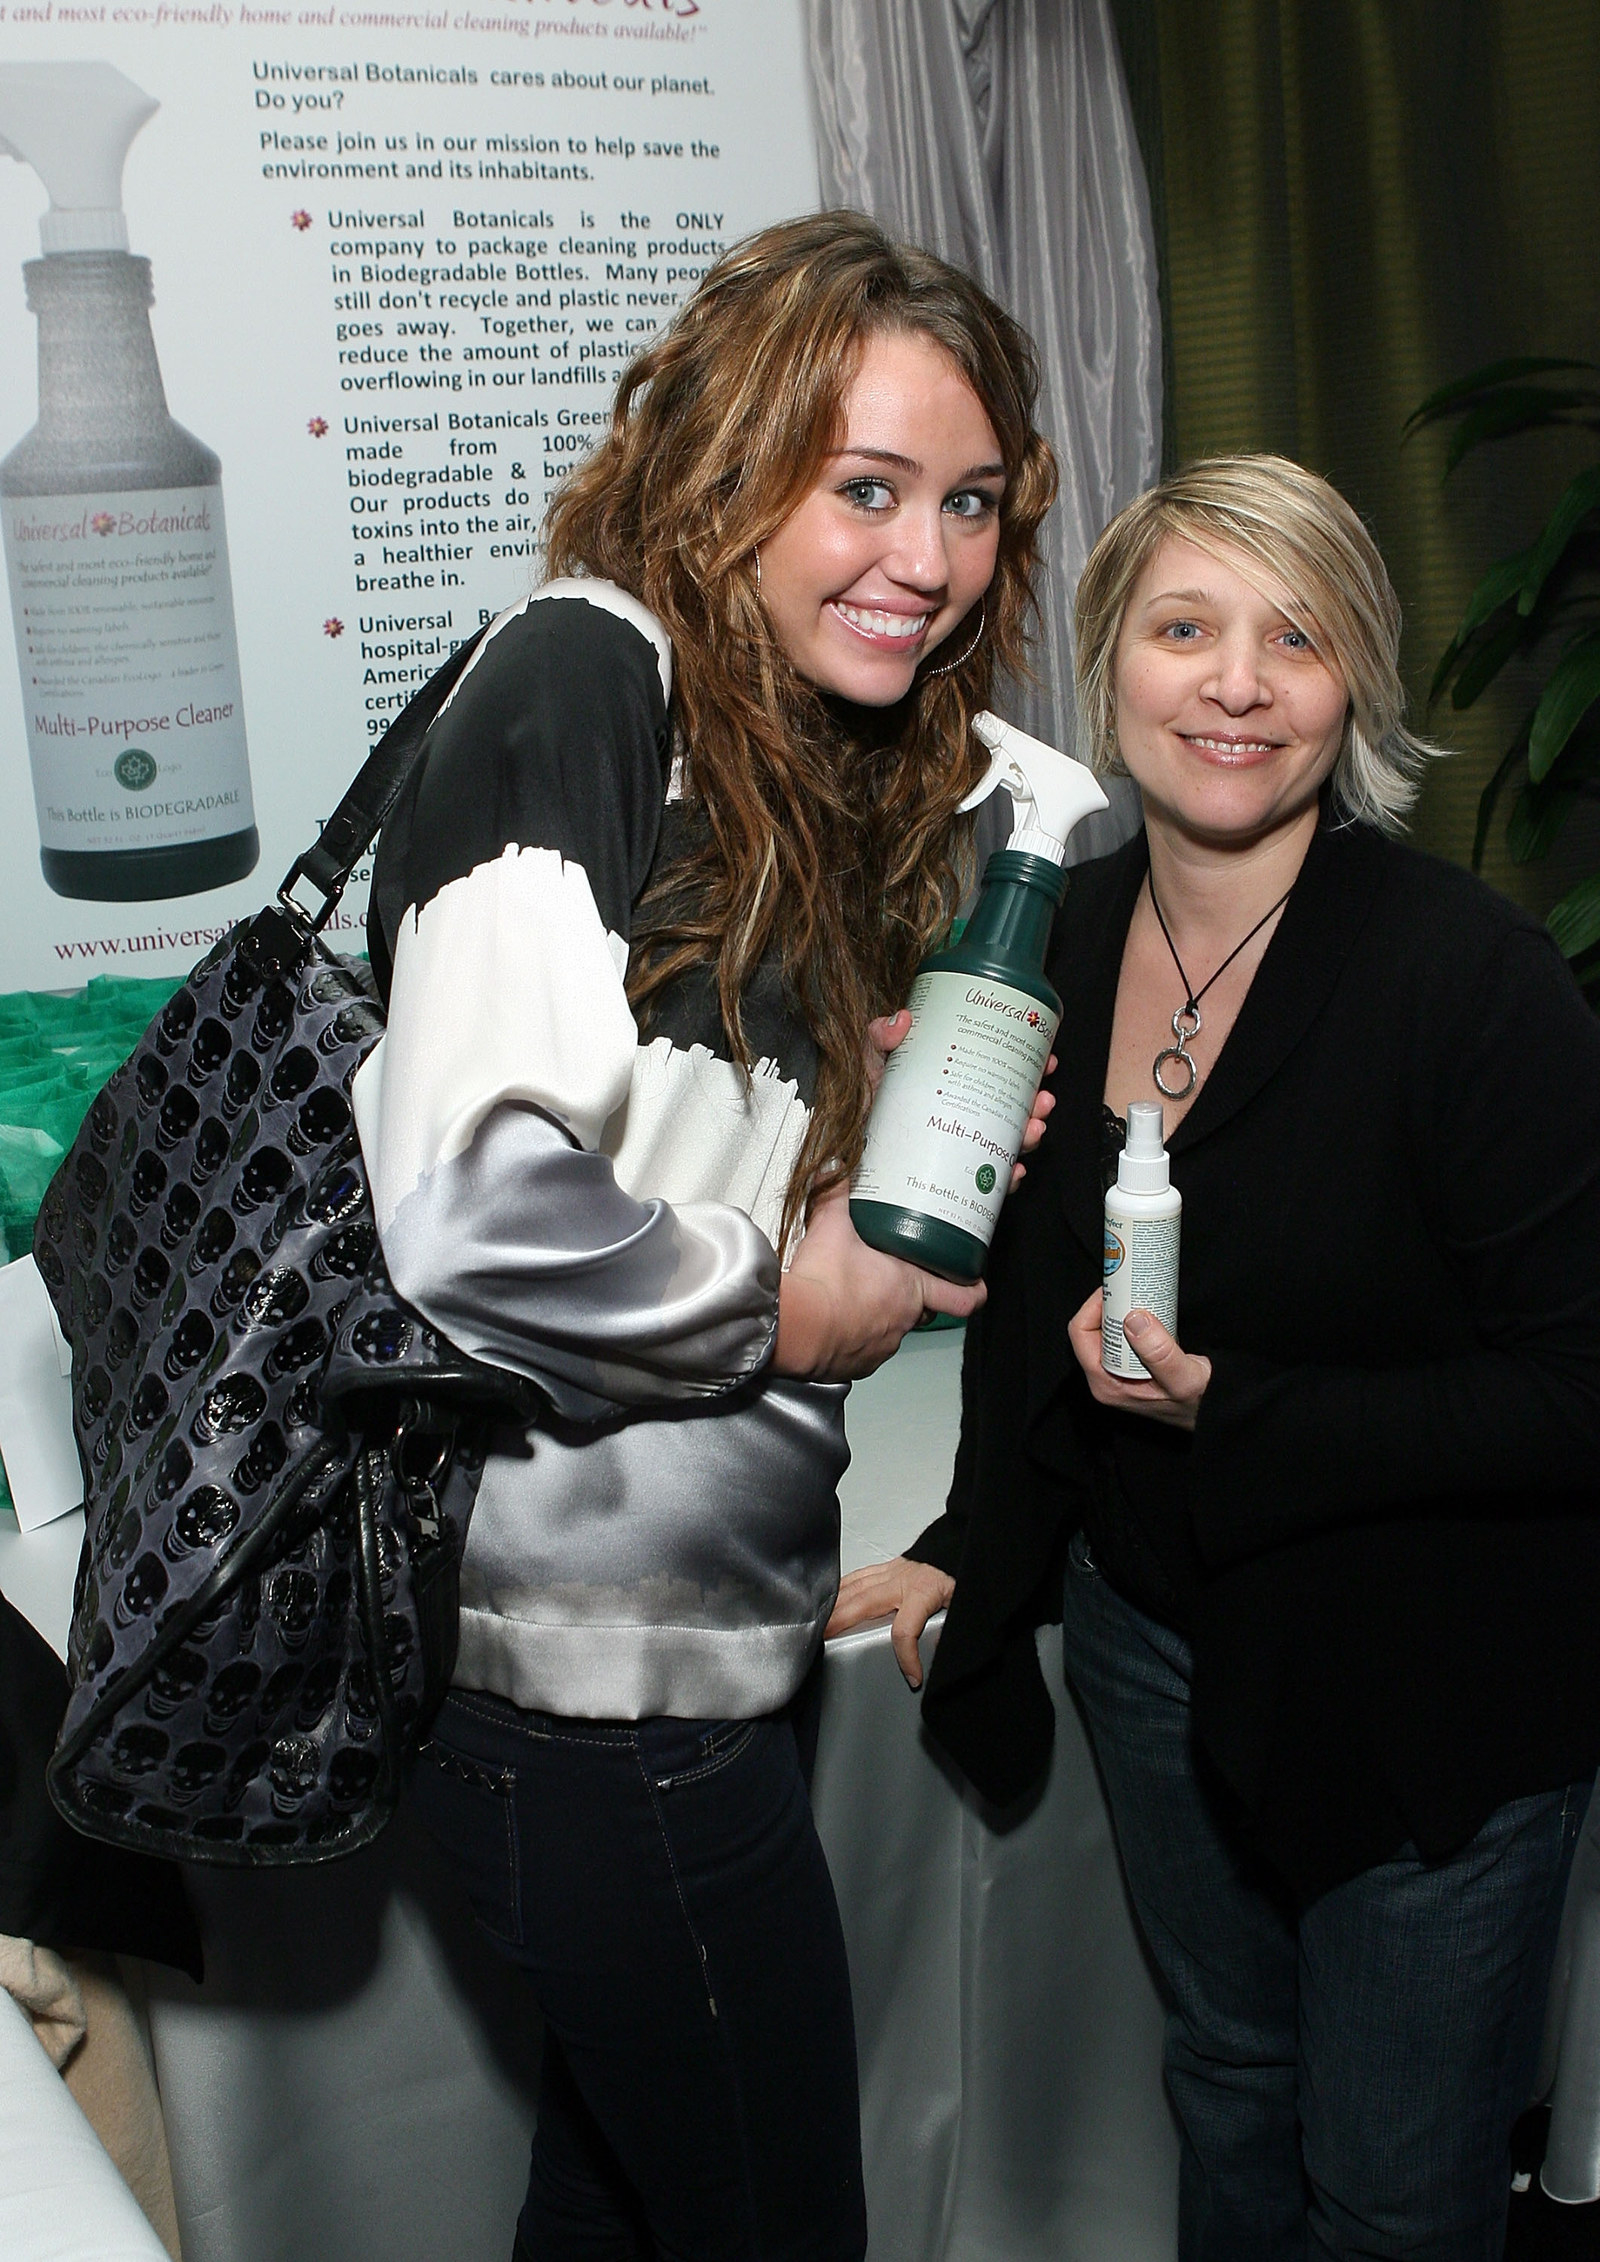 Miley Cyrus and a bottle of spray cleaner.